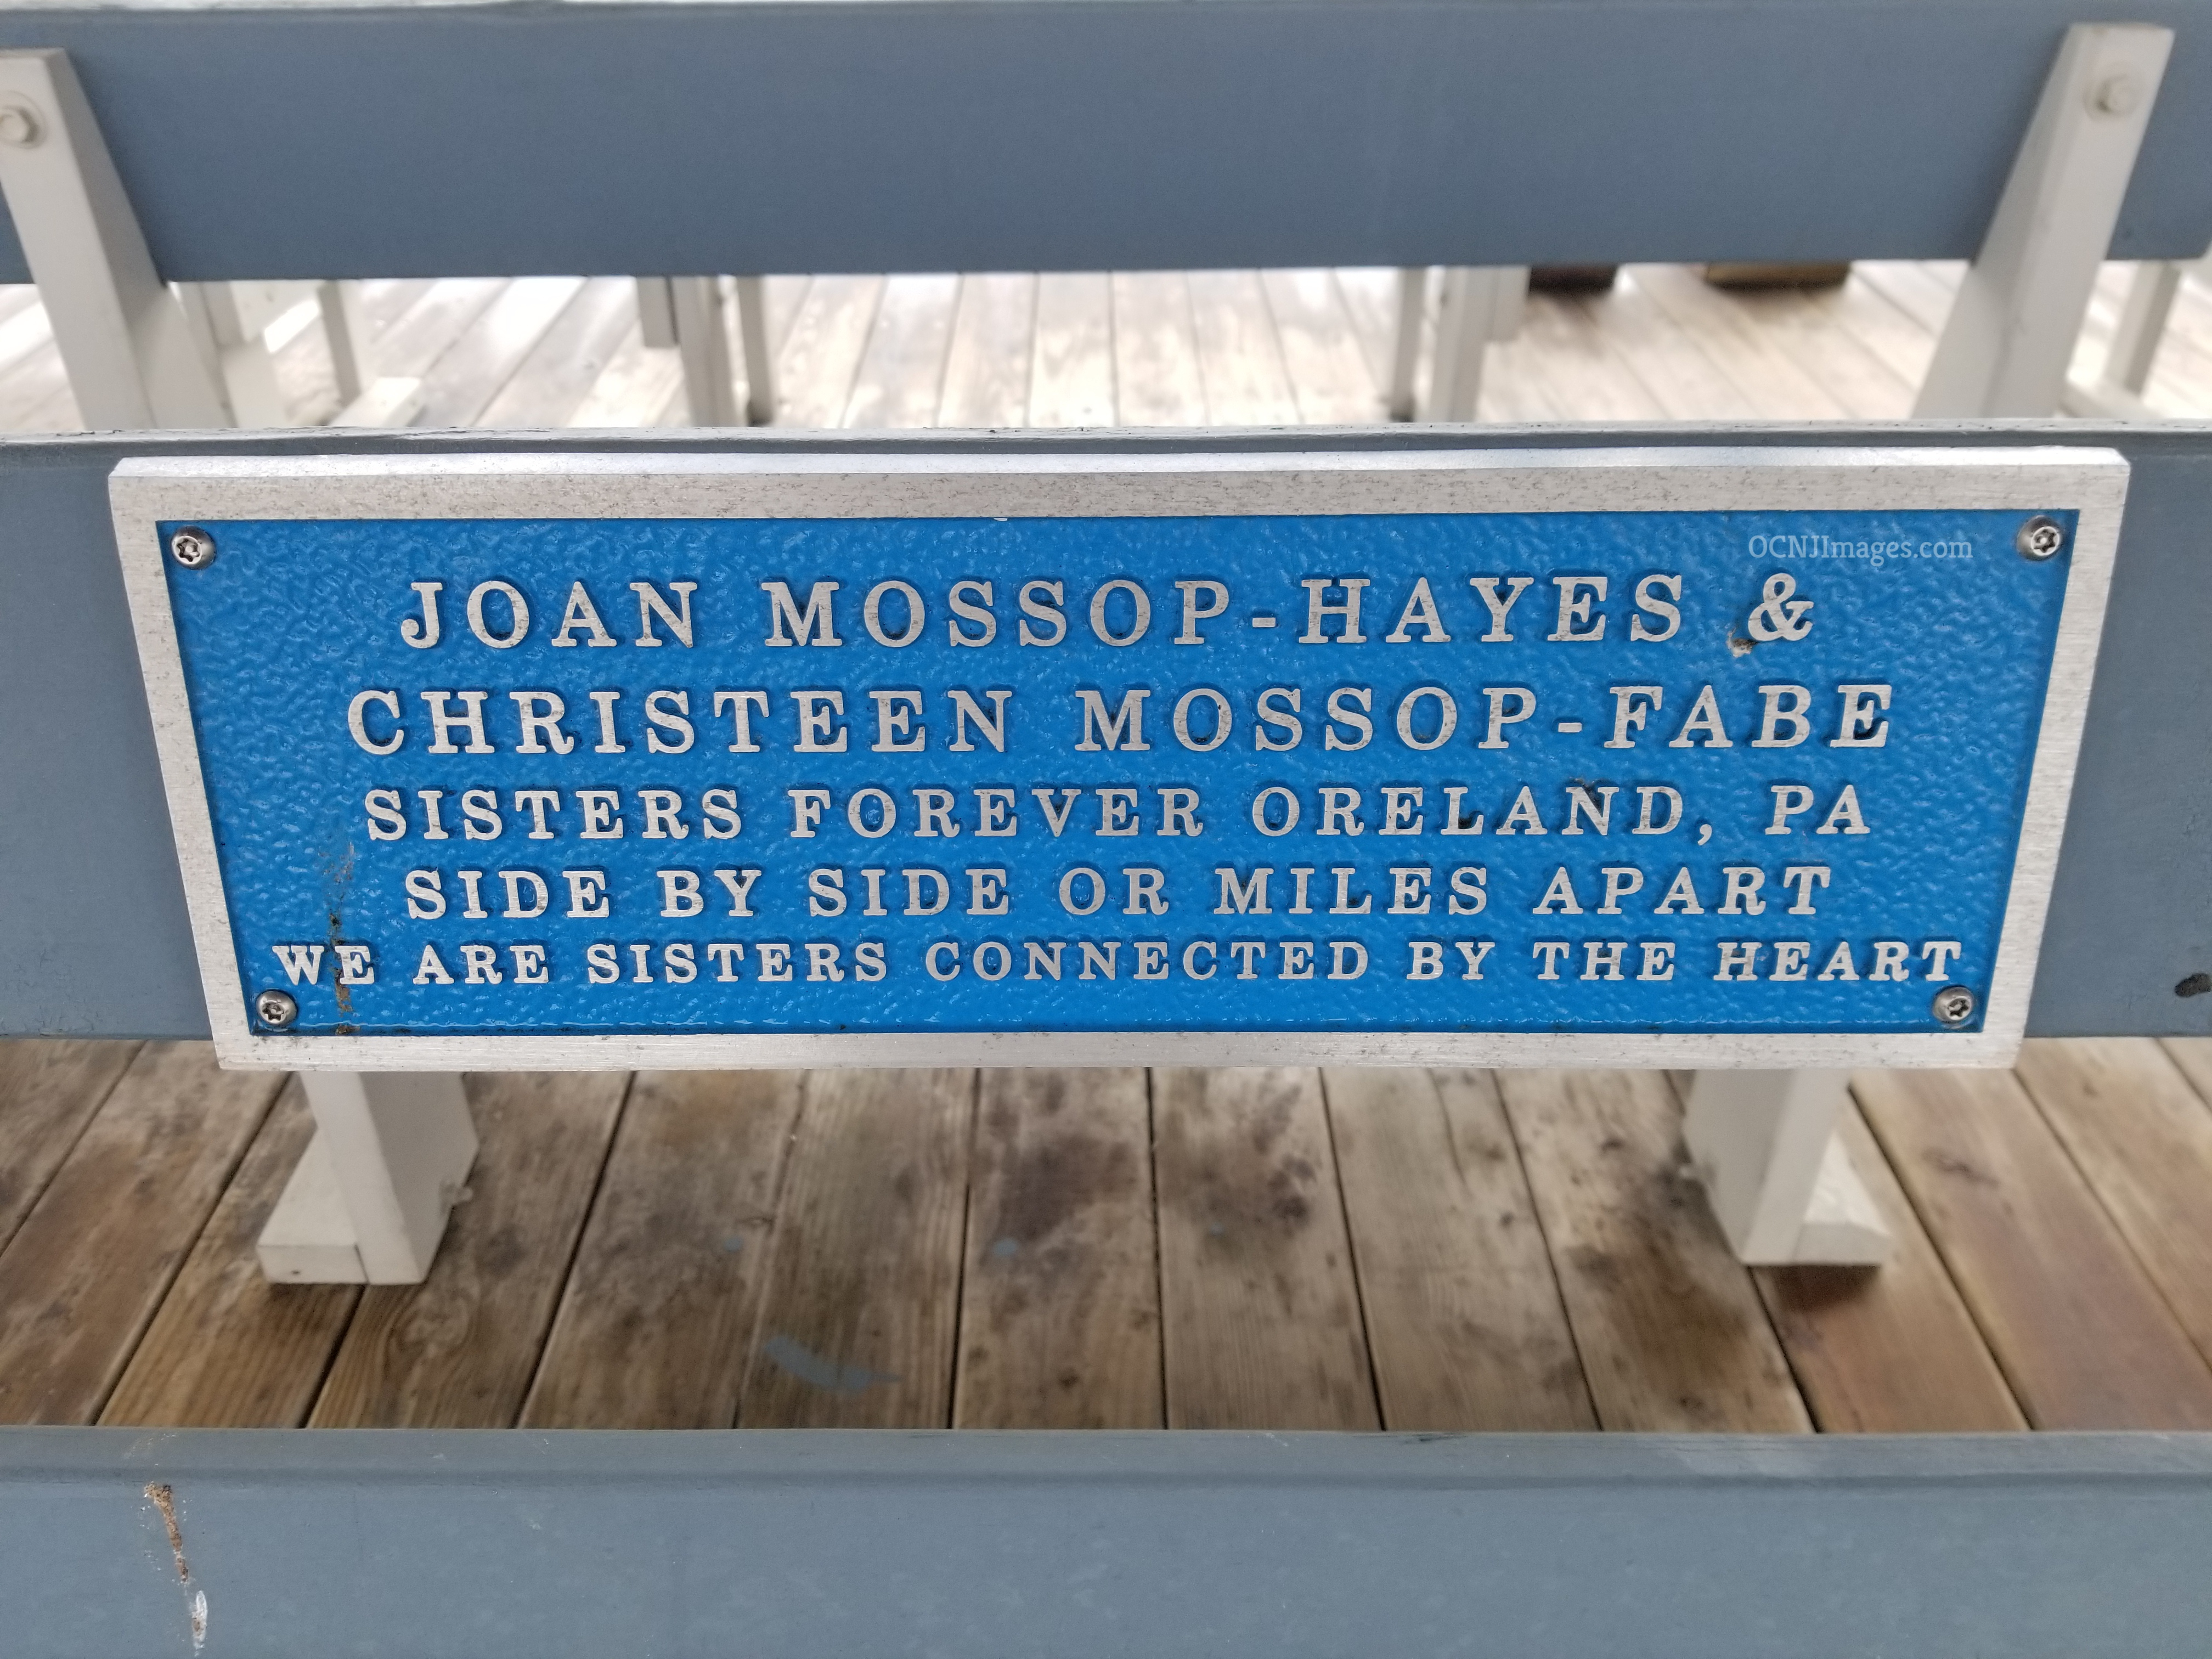 Mossop-Hayes, Mossop-Fabe